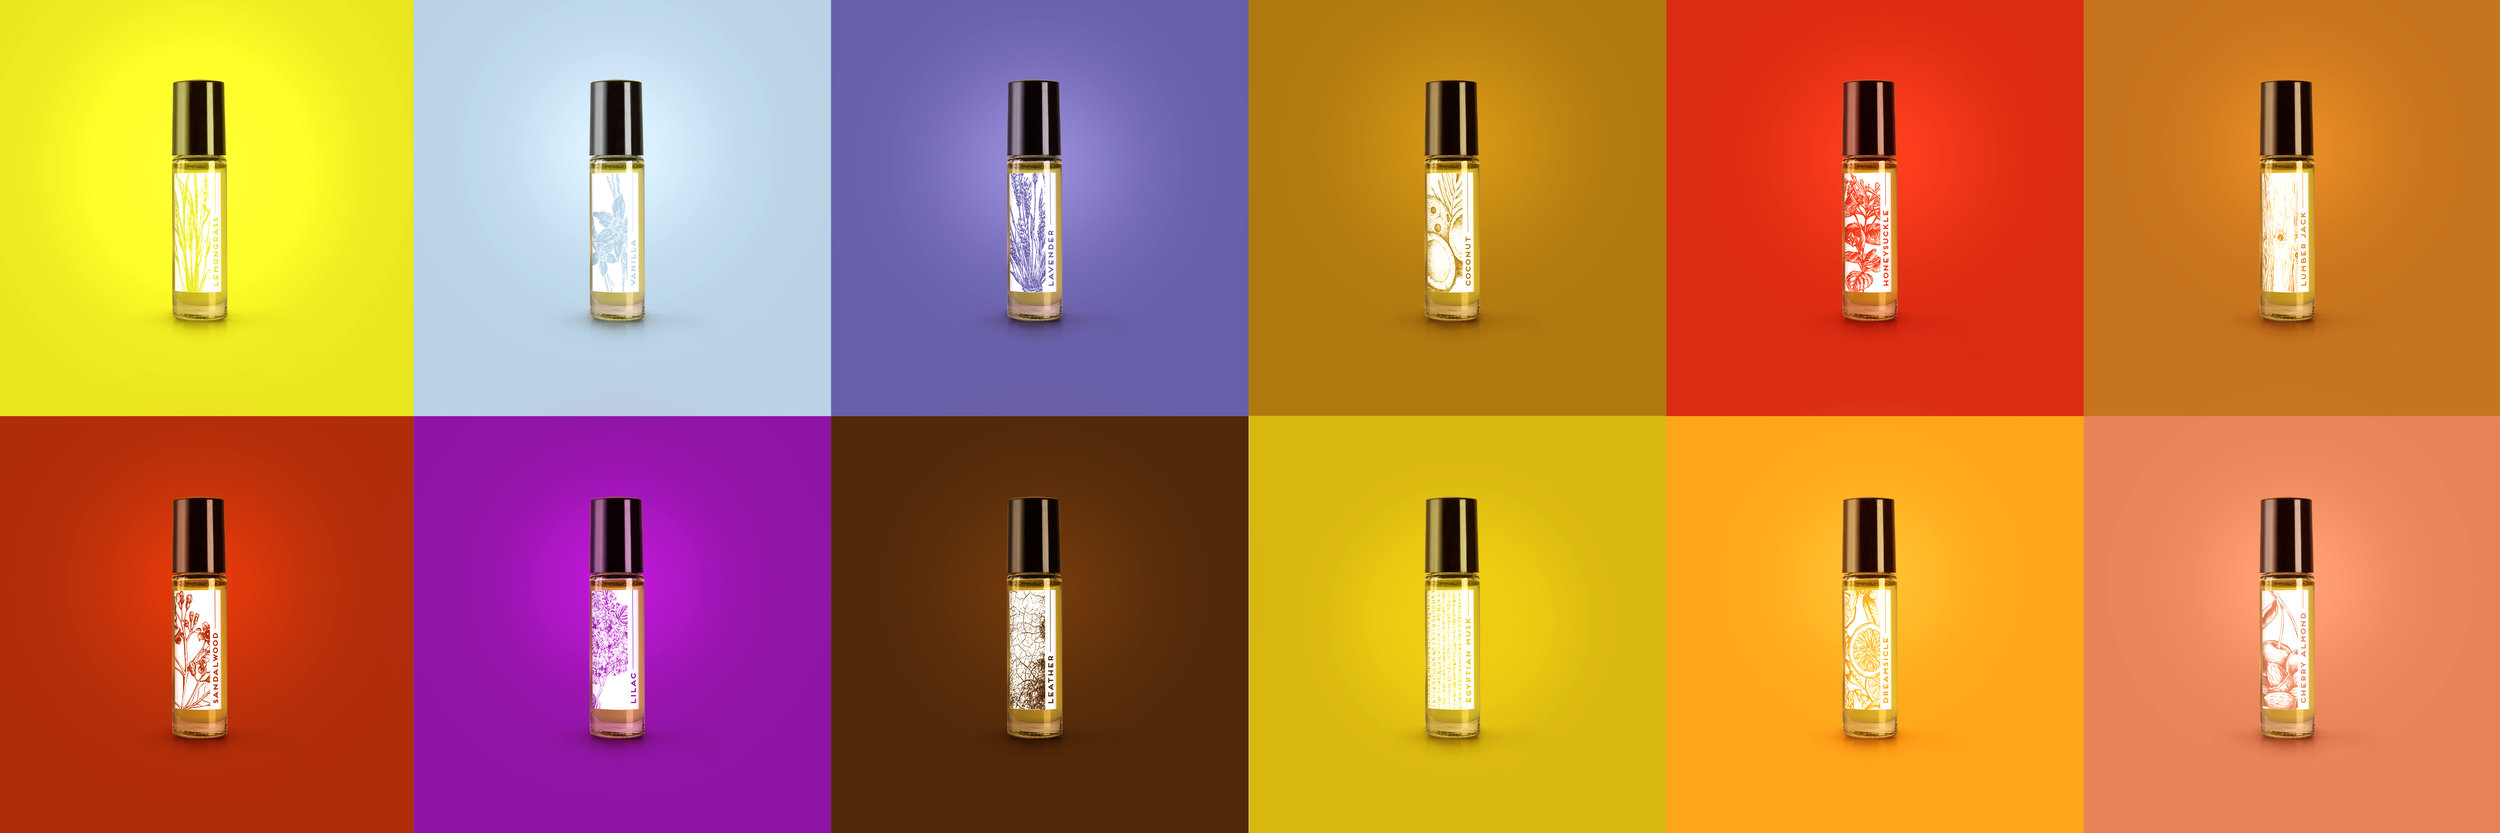 IN LOVE WITH OUR DEODORANT SCENTS?   THEY'RE NOW AVAILABLE AS FRAGRANCE OILS!   Shop